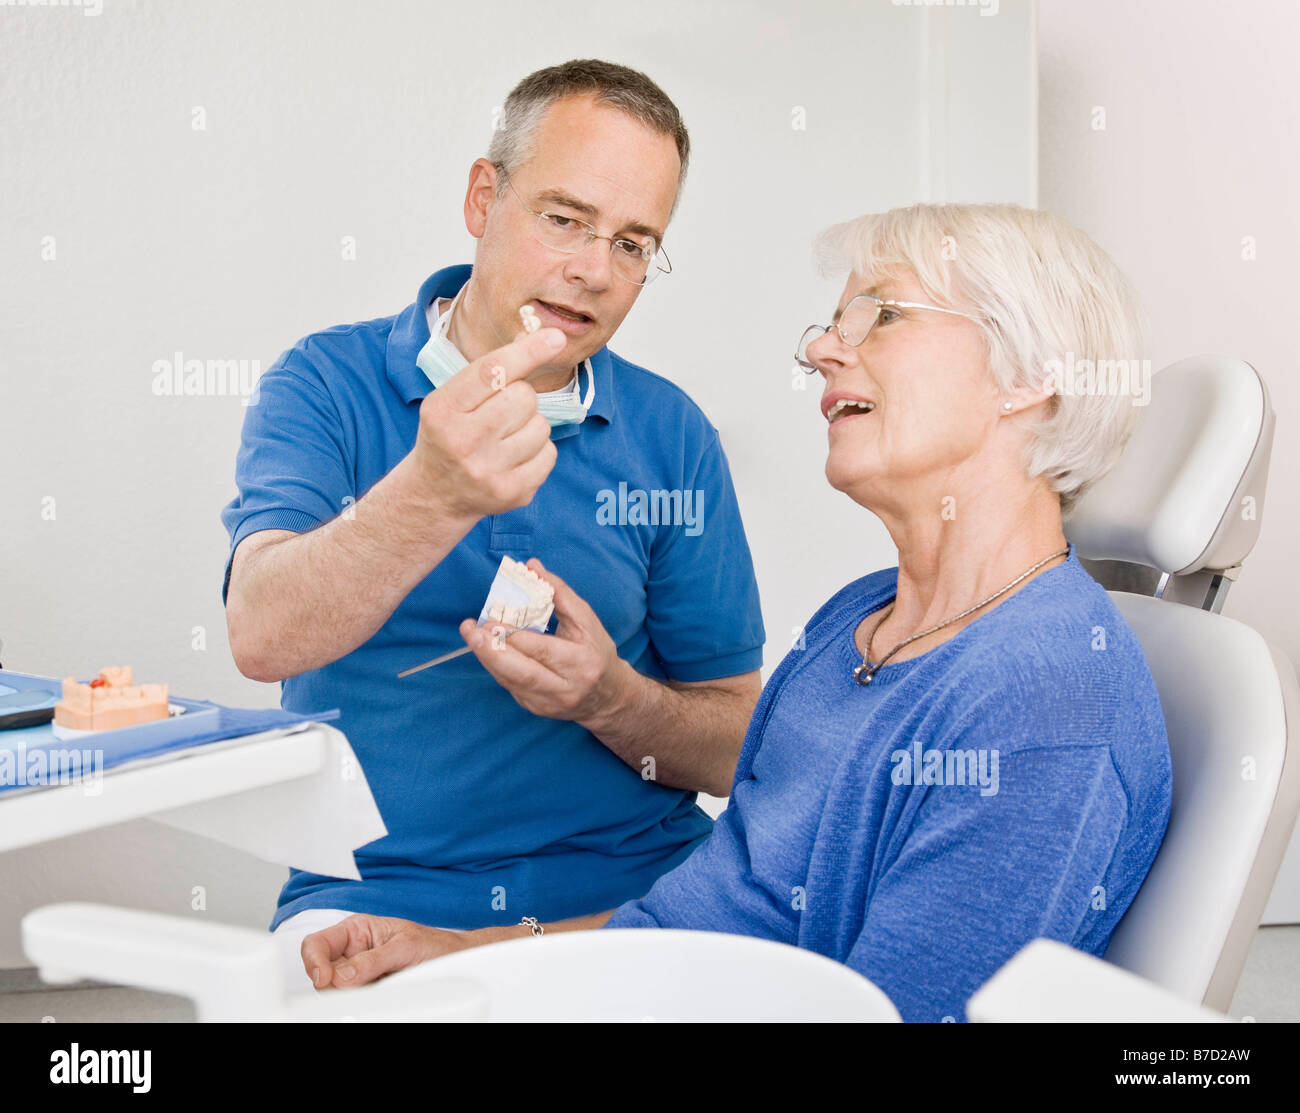 Male dentist talking with female patient Photo Stock